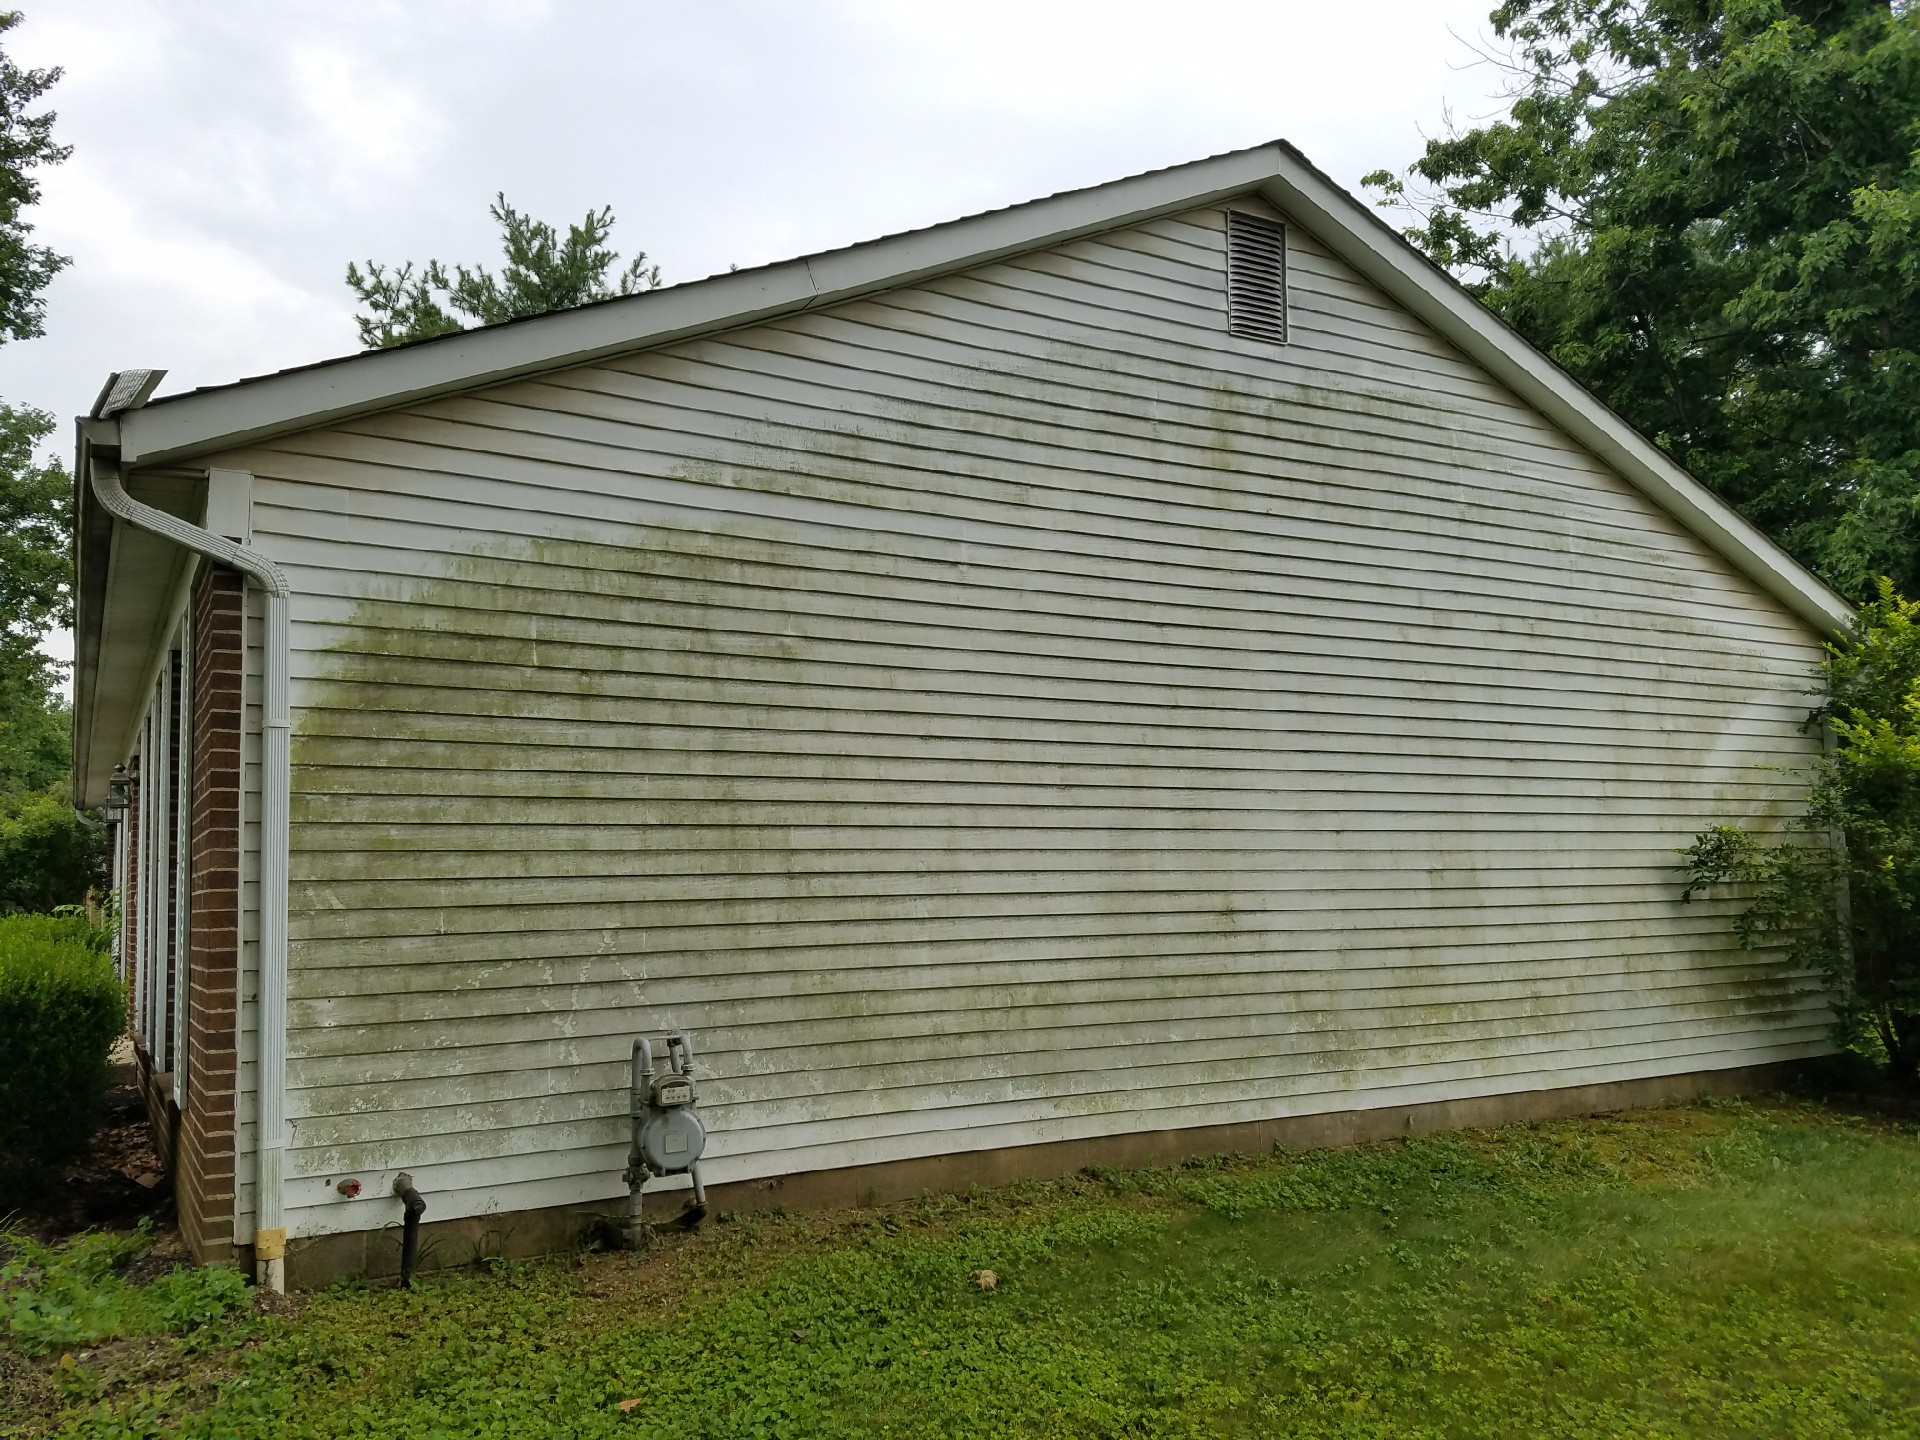 Ohio Power Washer Under Pressure Power Washing Llc